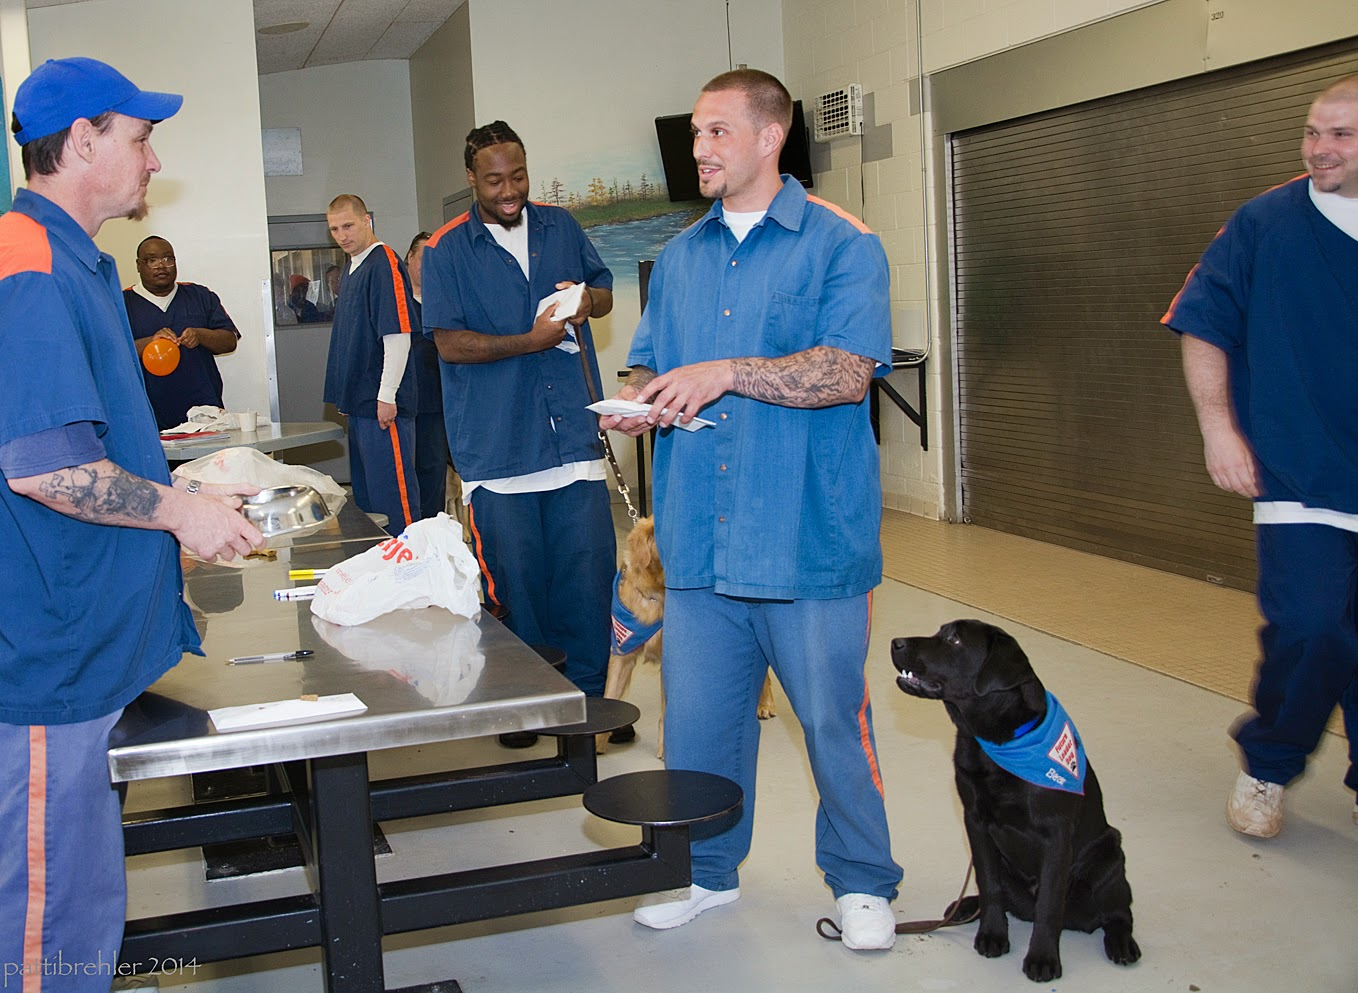 The same man is standing to the left with the dog bowl. This time he is looking at a different man standing opposit from the table on the right side. The man on the right is reaching into the white envelope with his left hand. He is standing on the leash of the black lab puppy that is sitting on his left side looking up at him. The puppy is wearing the blue Future Leader Dog bandana. More men are in line in the bacground, and one man on the far right is wallking by smiling at the men standing. There is a white plastic bag on the table.